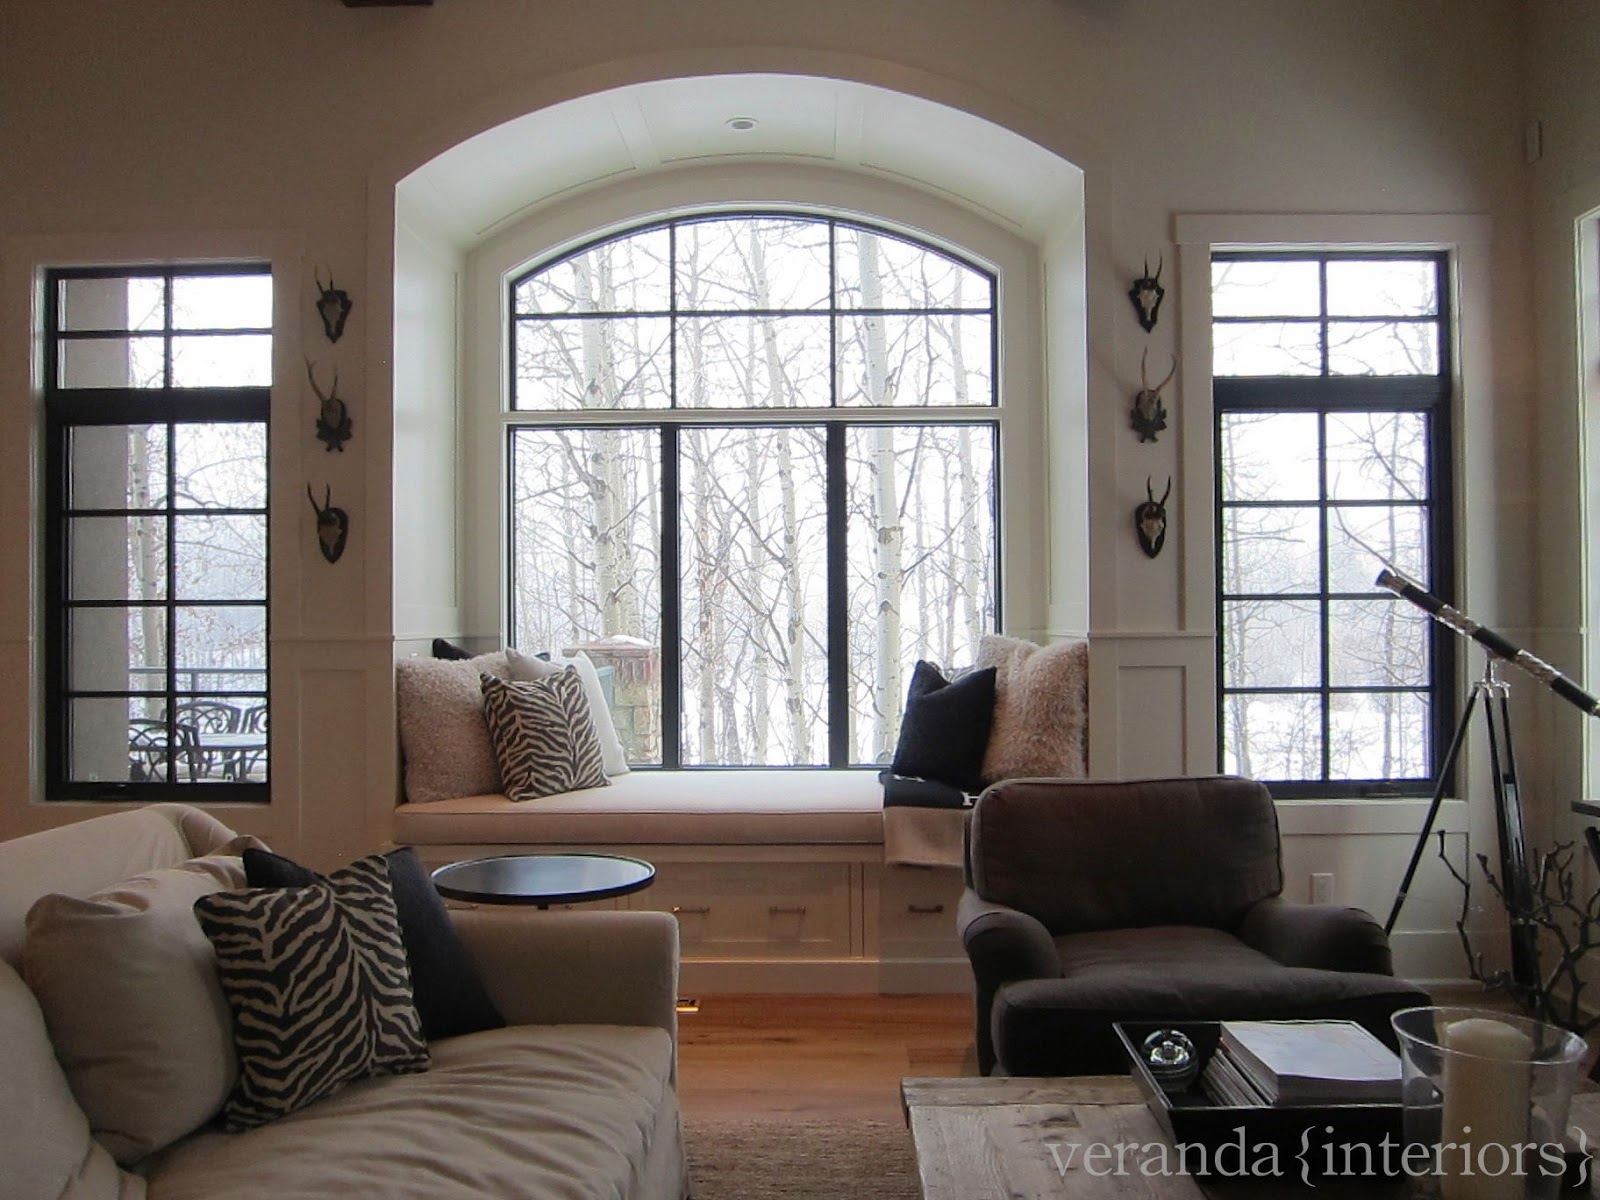 My favorite room veranda interiors la dolce vita for Veranda window design